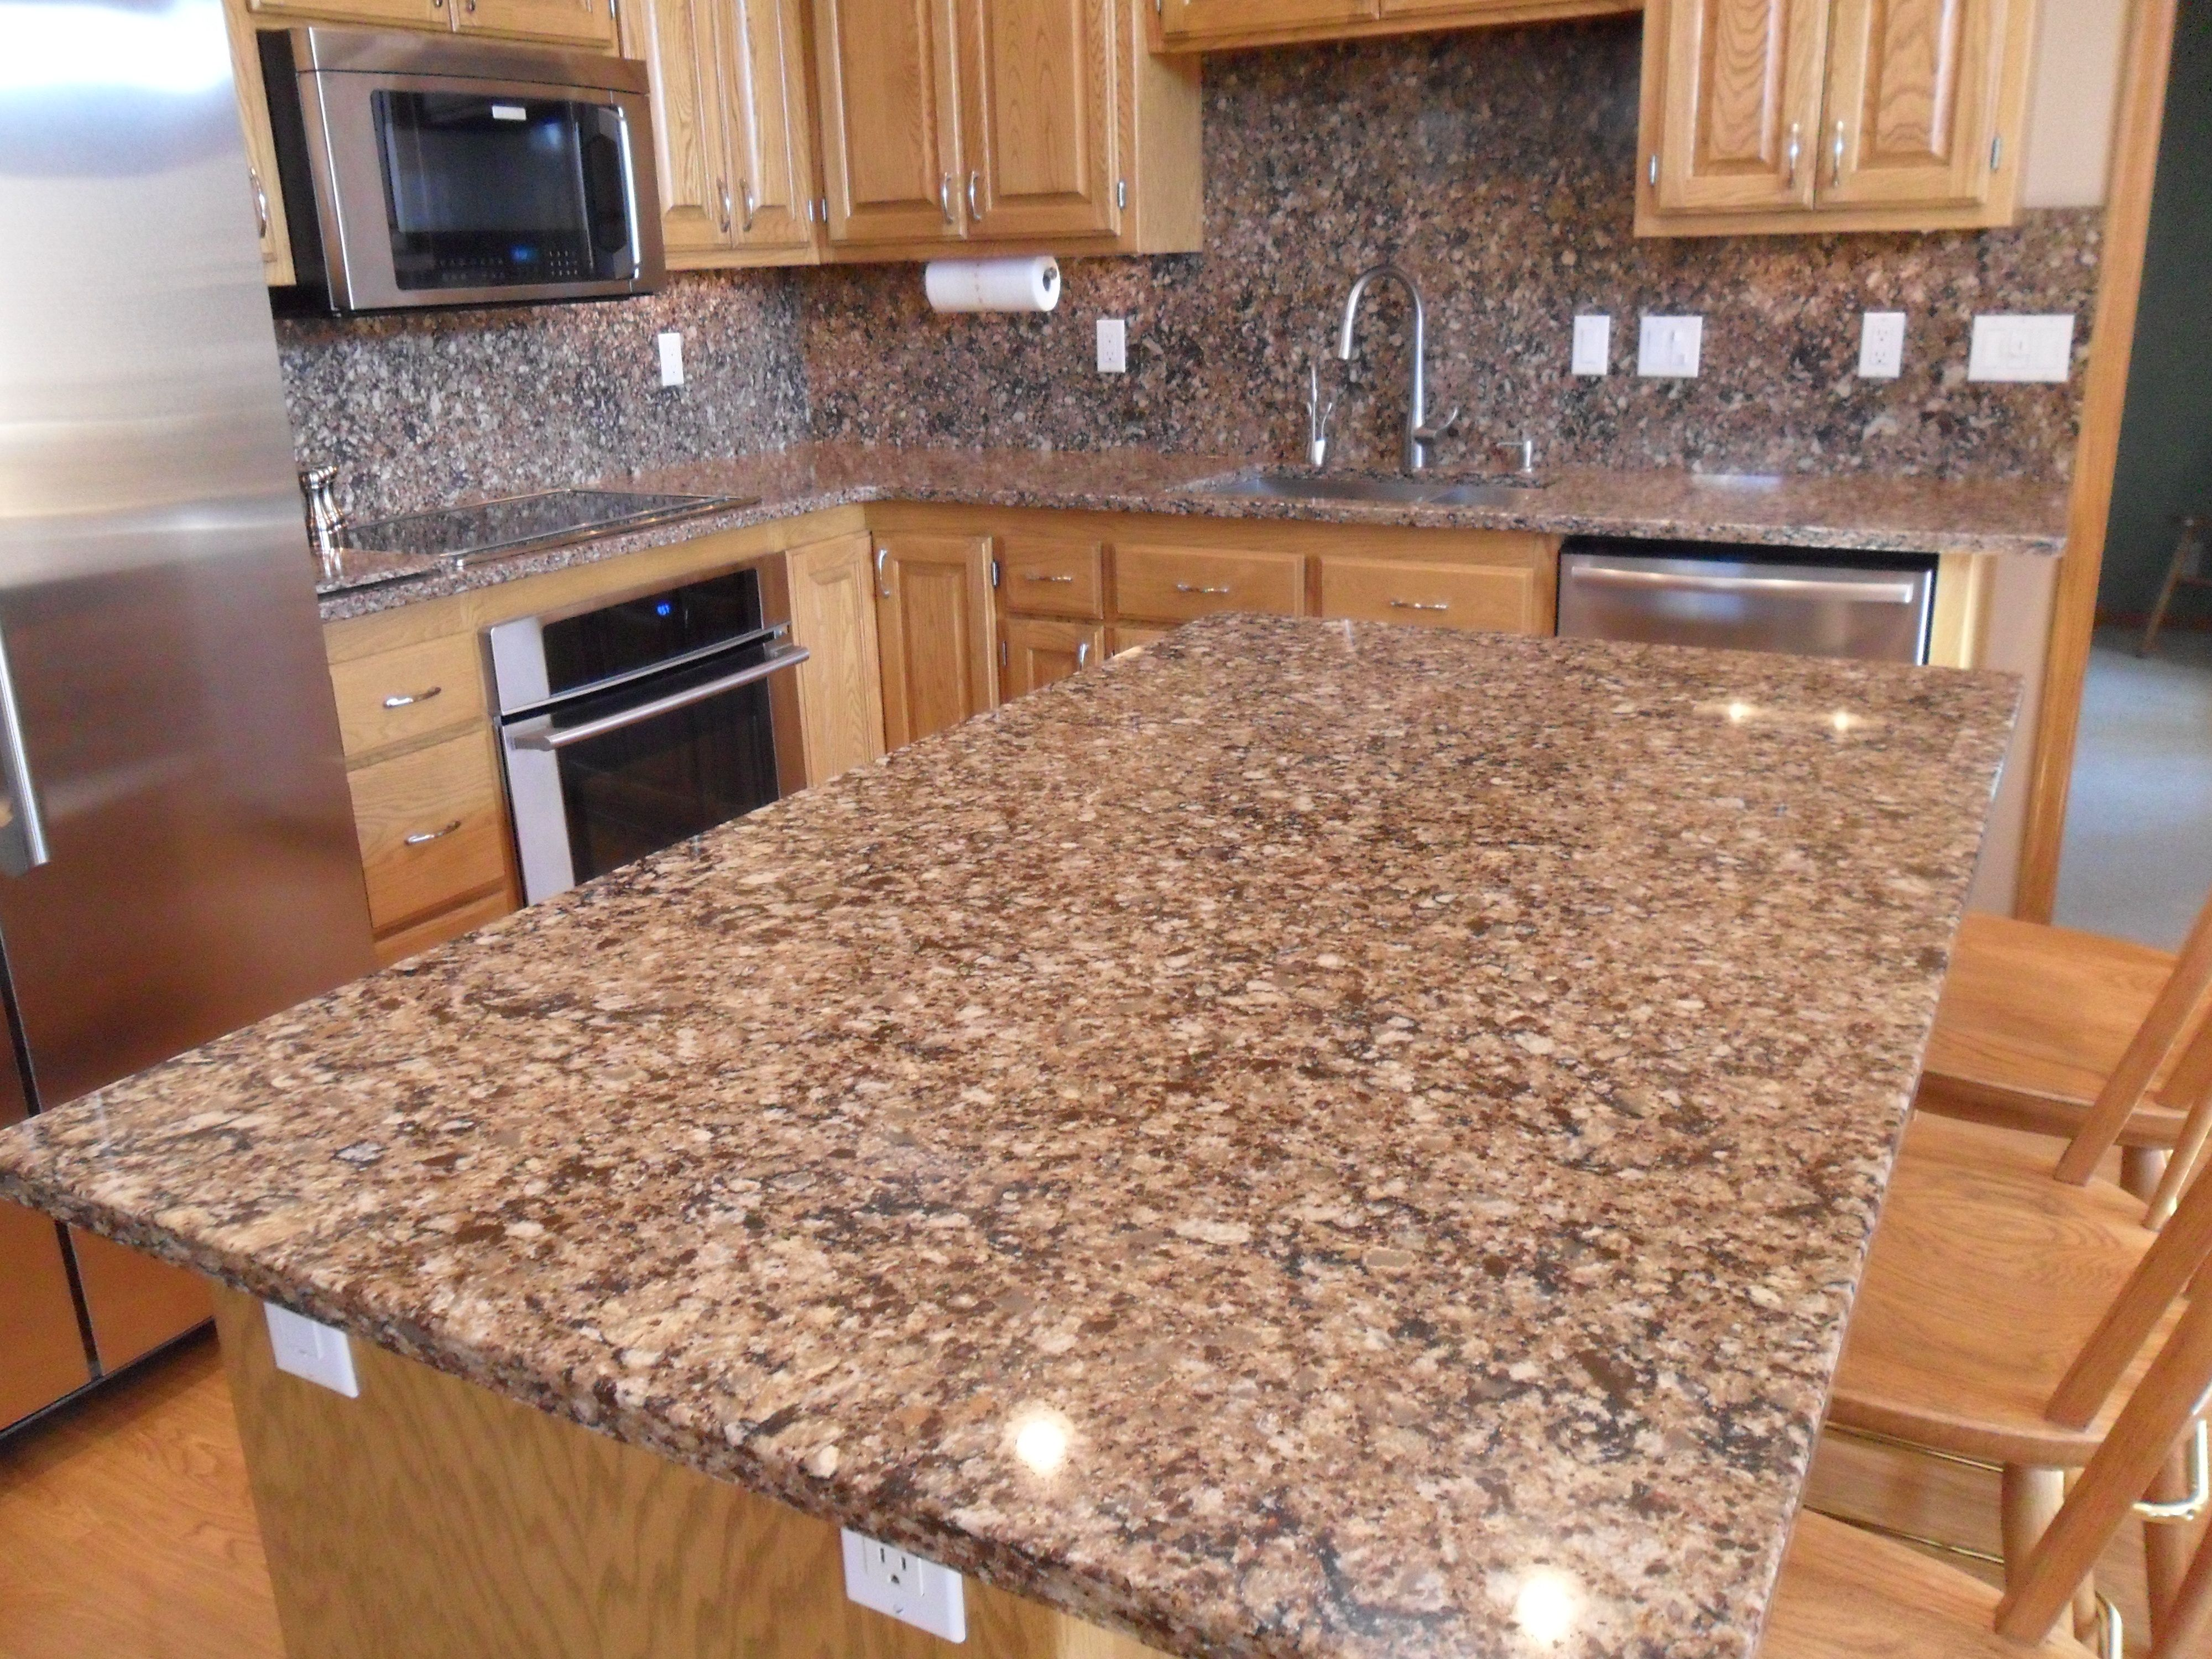 quartz the and five stone s difference quartertzite start what countertops star quartzite whats tampa is inc between